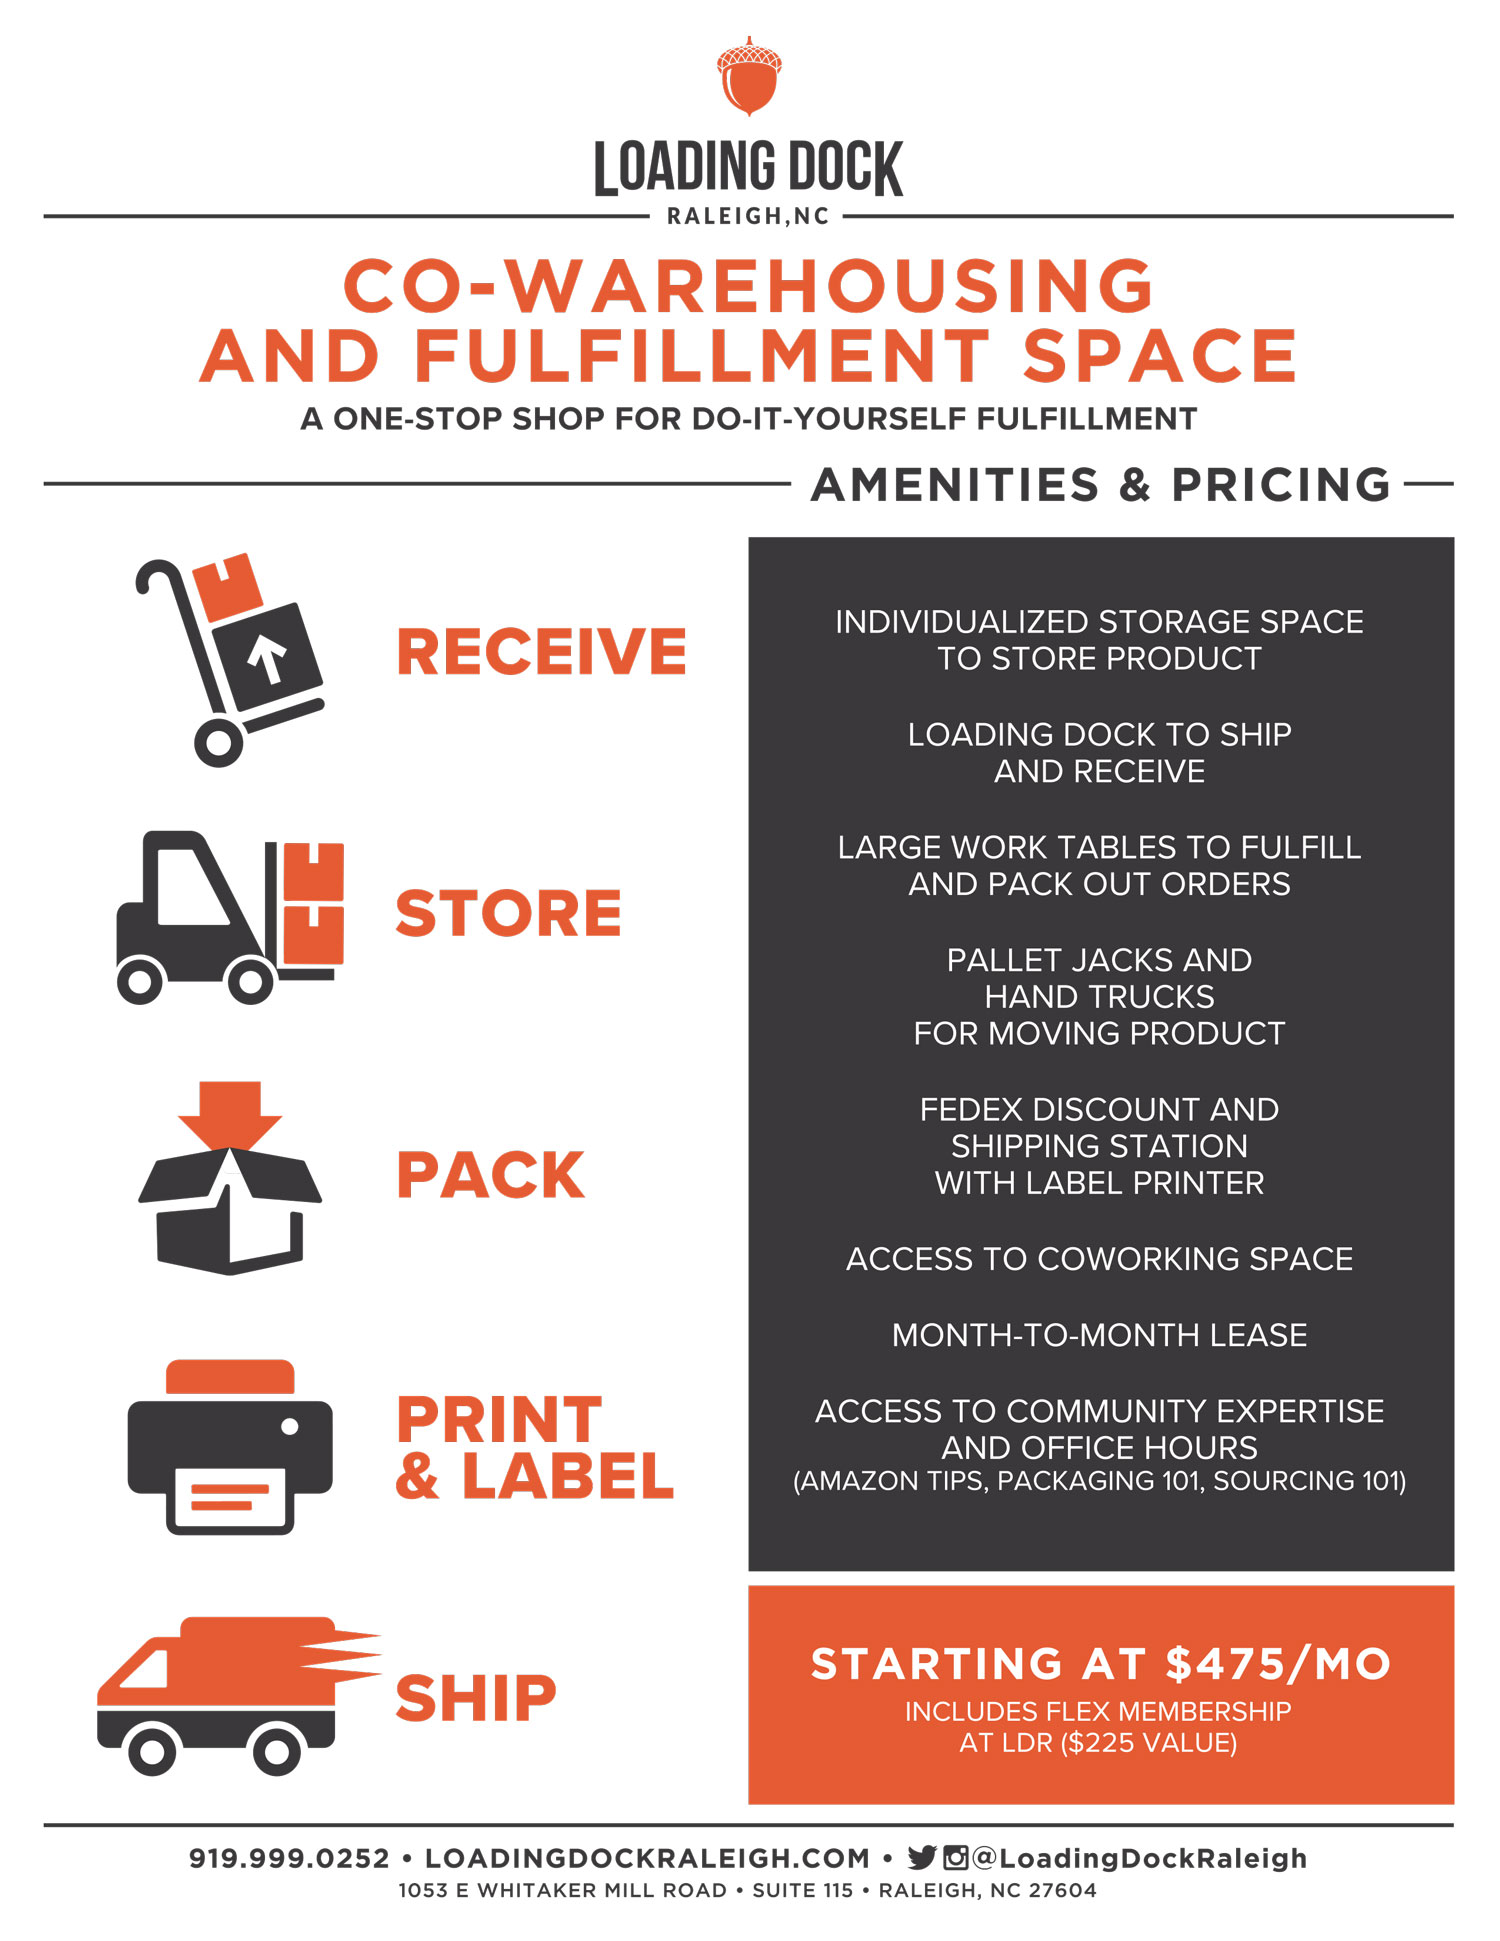 co-warehousing-space-loading-dock-raleigh-nc.jpg